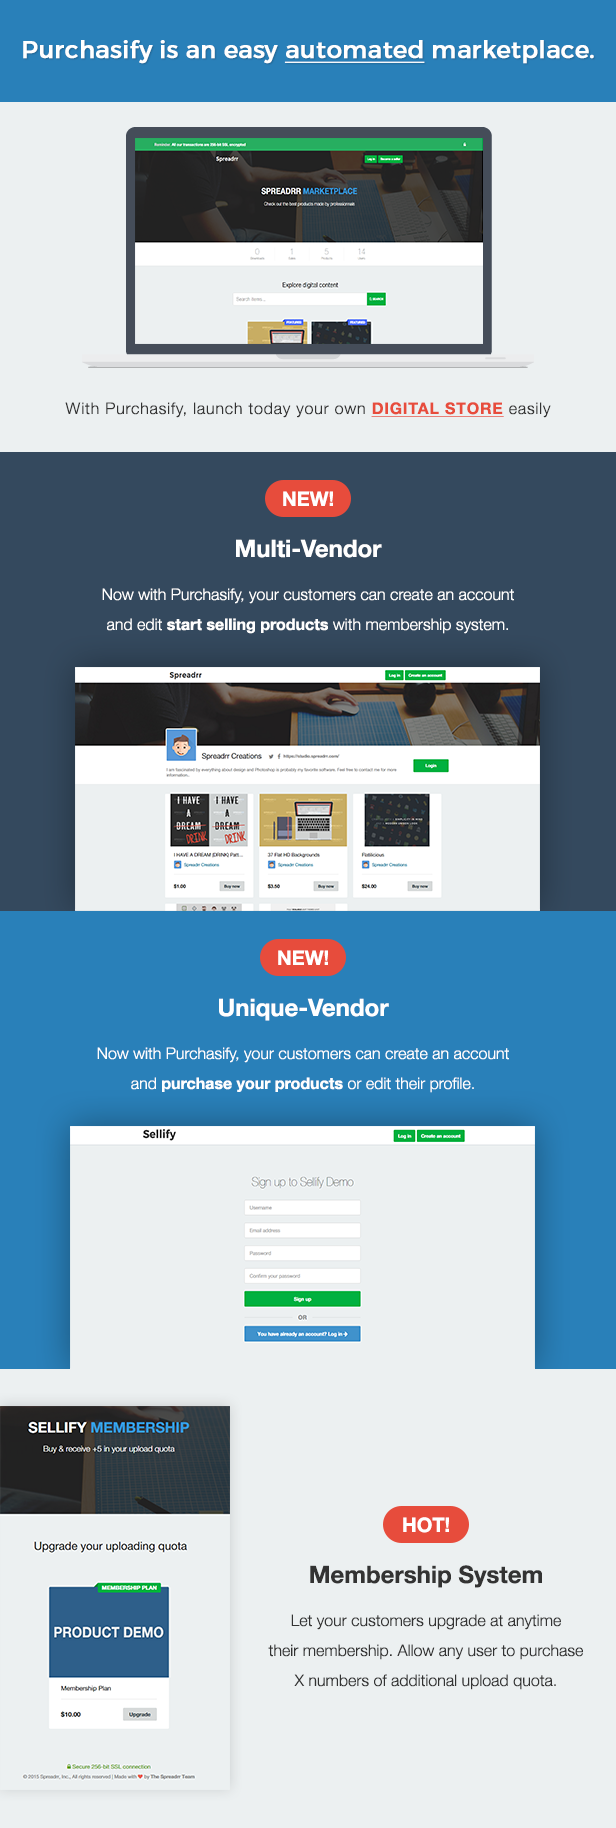 Purchasify - Marketplace for Digital Products - 4